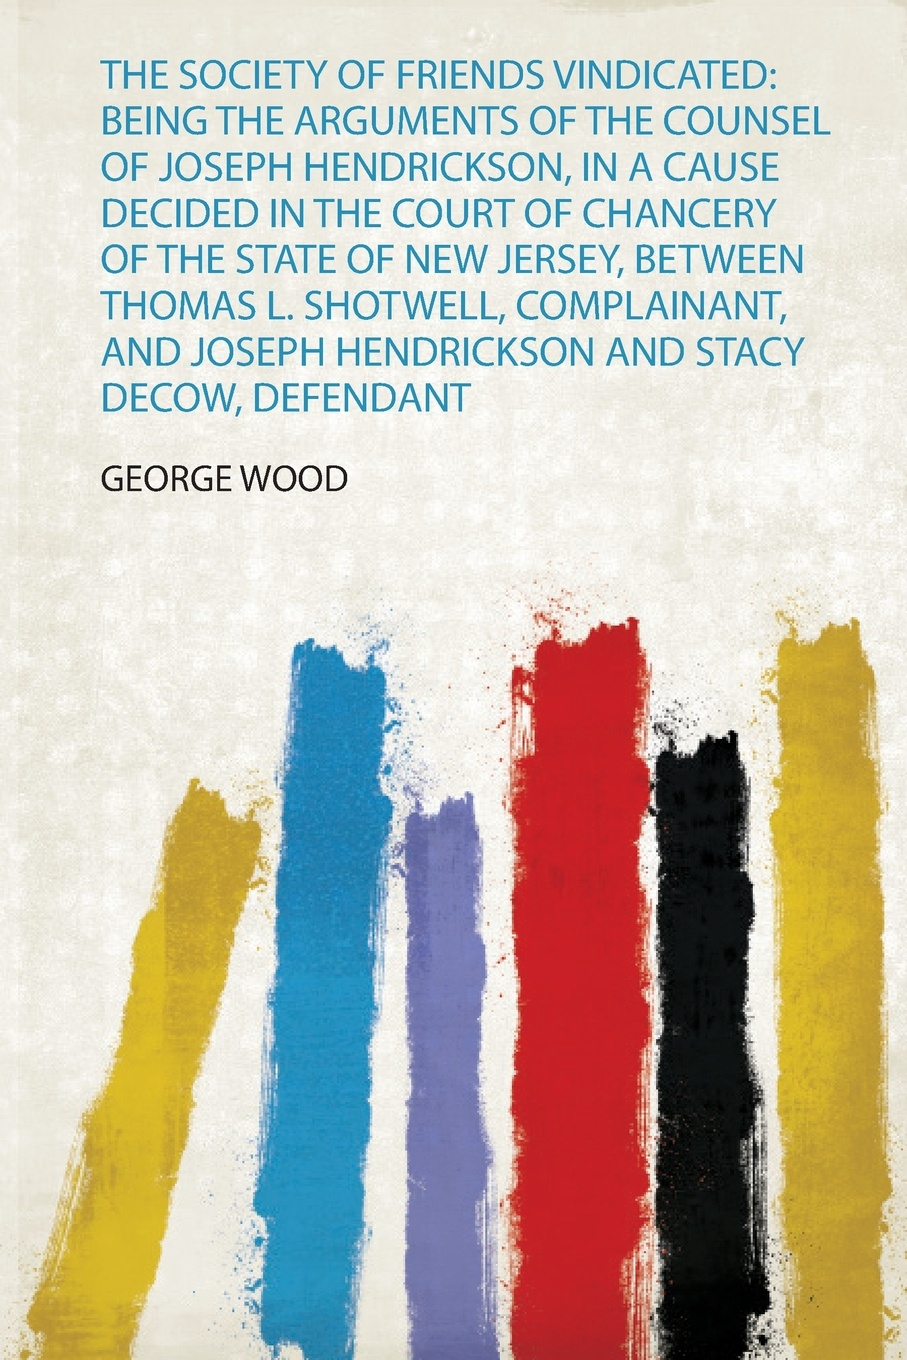 The Society of Friends Vindicated. Being the Arguments of the Counsel of Joseph Hendrickson, in a Cause Decided in the Court of Chancery of the State of New Jersey, Between Thomas L. Shotwell, Complainant, and Joseph Hendrickson and Stacy Decow, D... mccarty joseph hendrickson two thousand miles through the heart of mexico